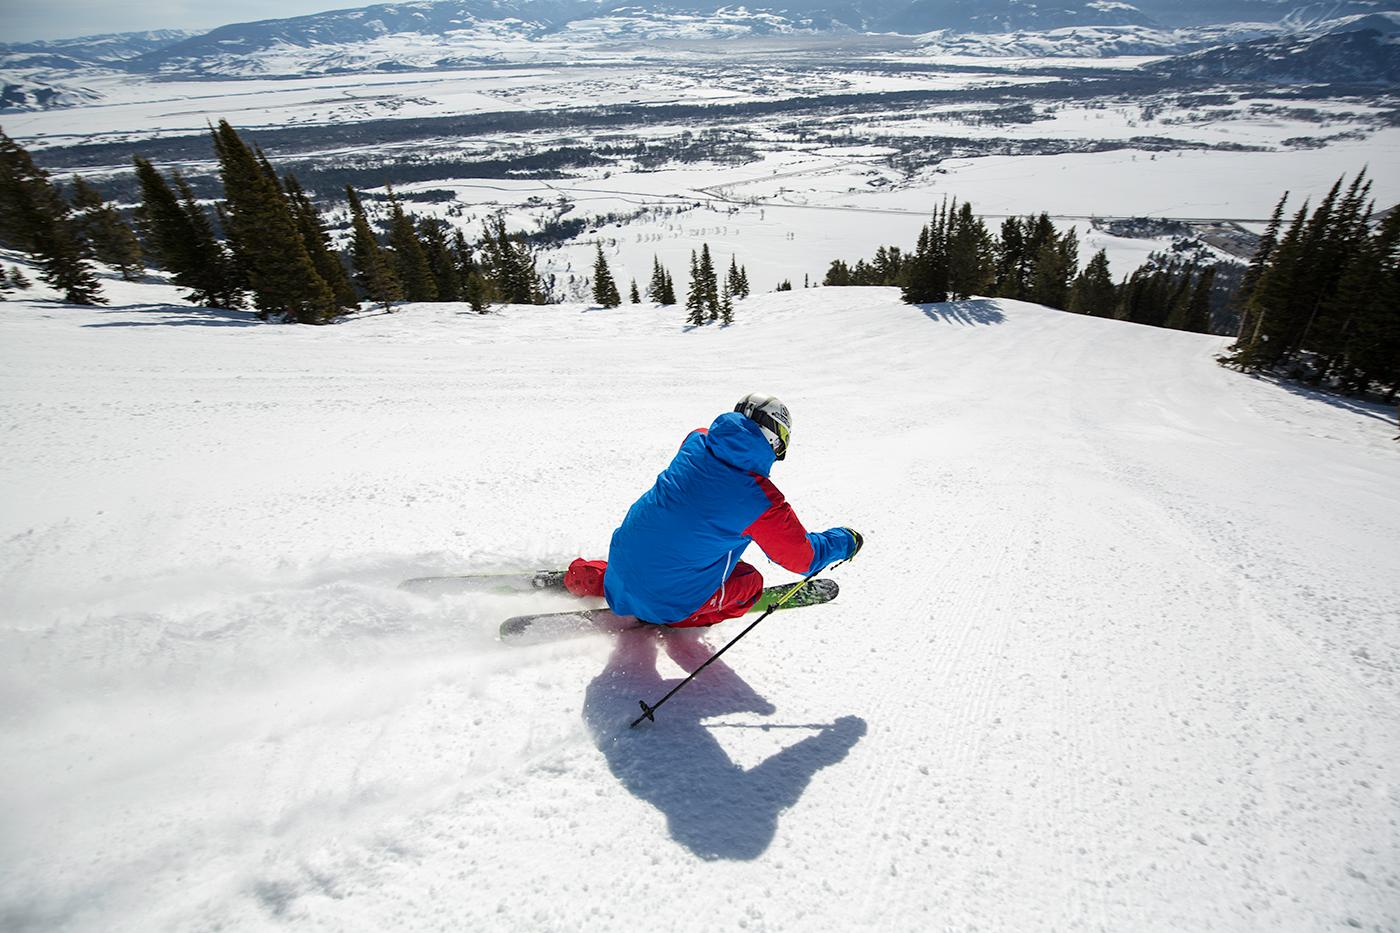 Local skier Tigger Knecht tests out the newly opened terrain, heading full speed down the 3,000-vertical-foot trail called Kemmerer Run